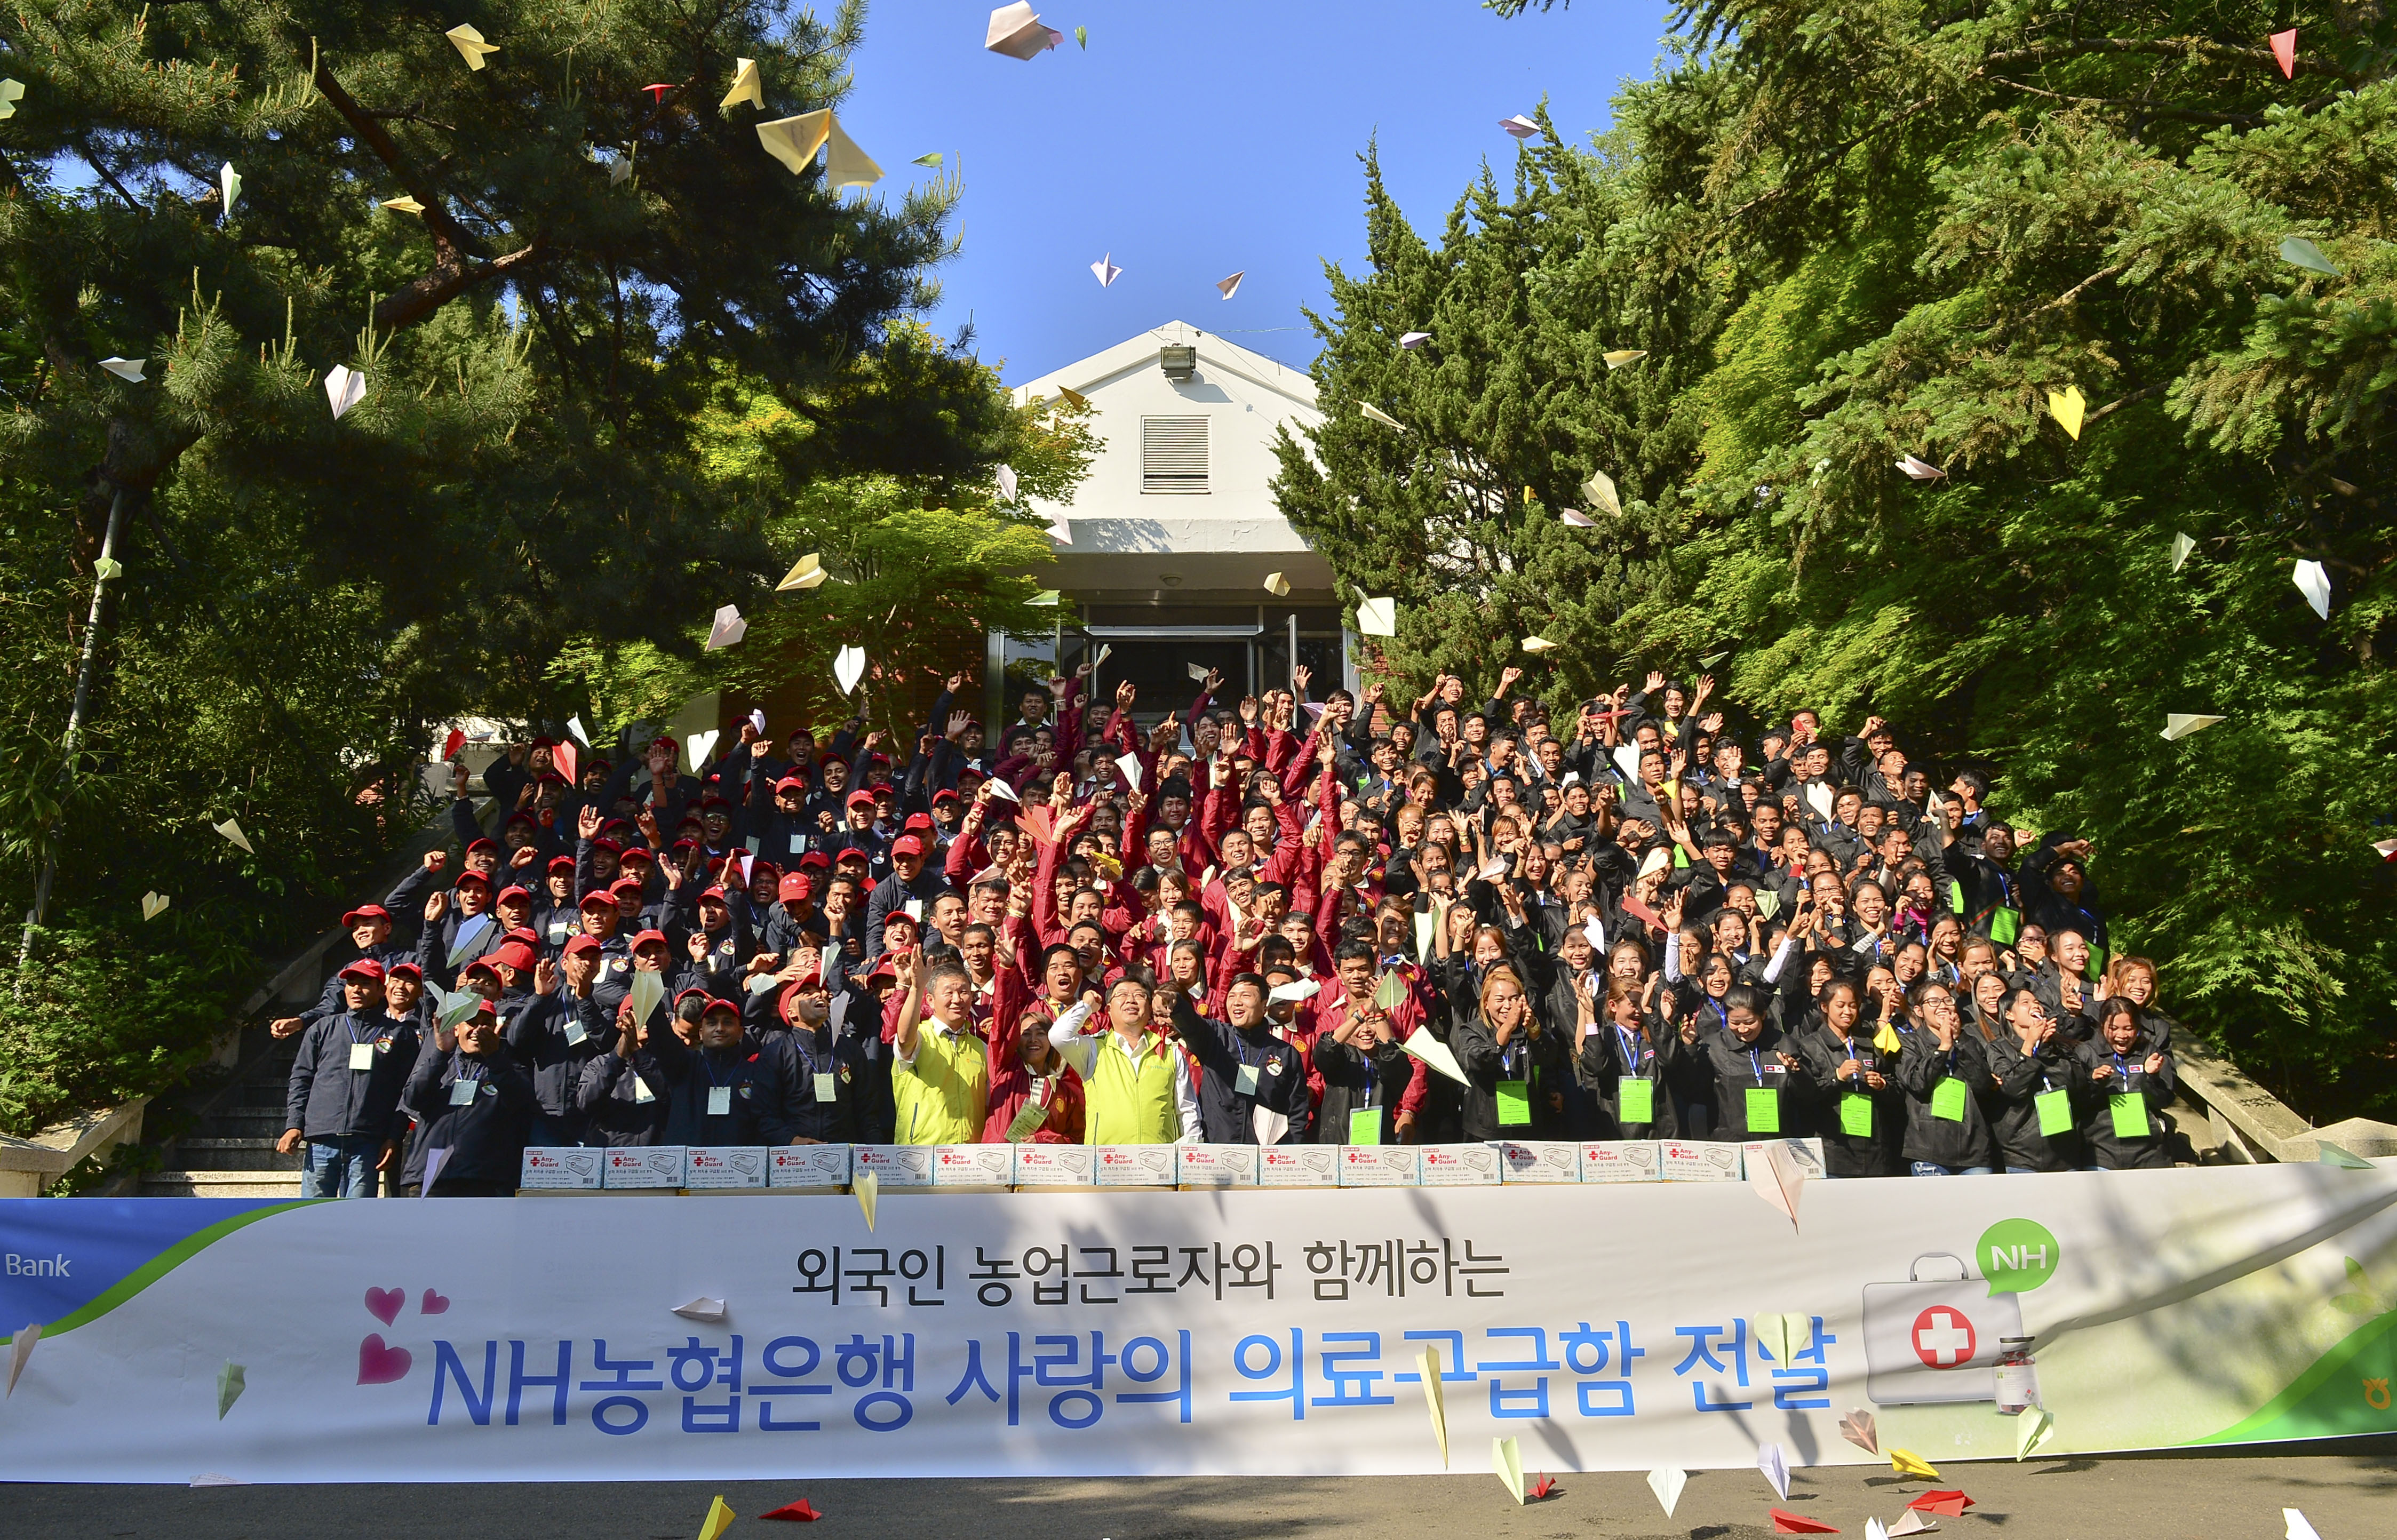 NH Nonghyup Bank President Lee Kyung-seop and its employees' volunteer group are flying an airplanes of wishes with foreigners working at farming villages.